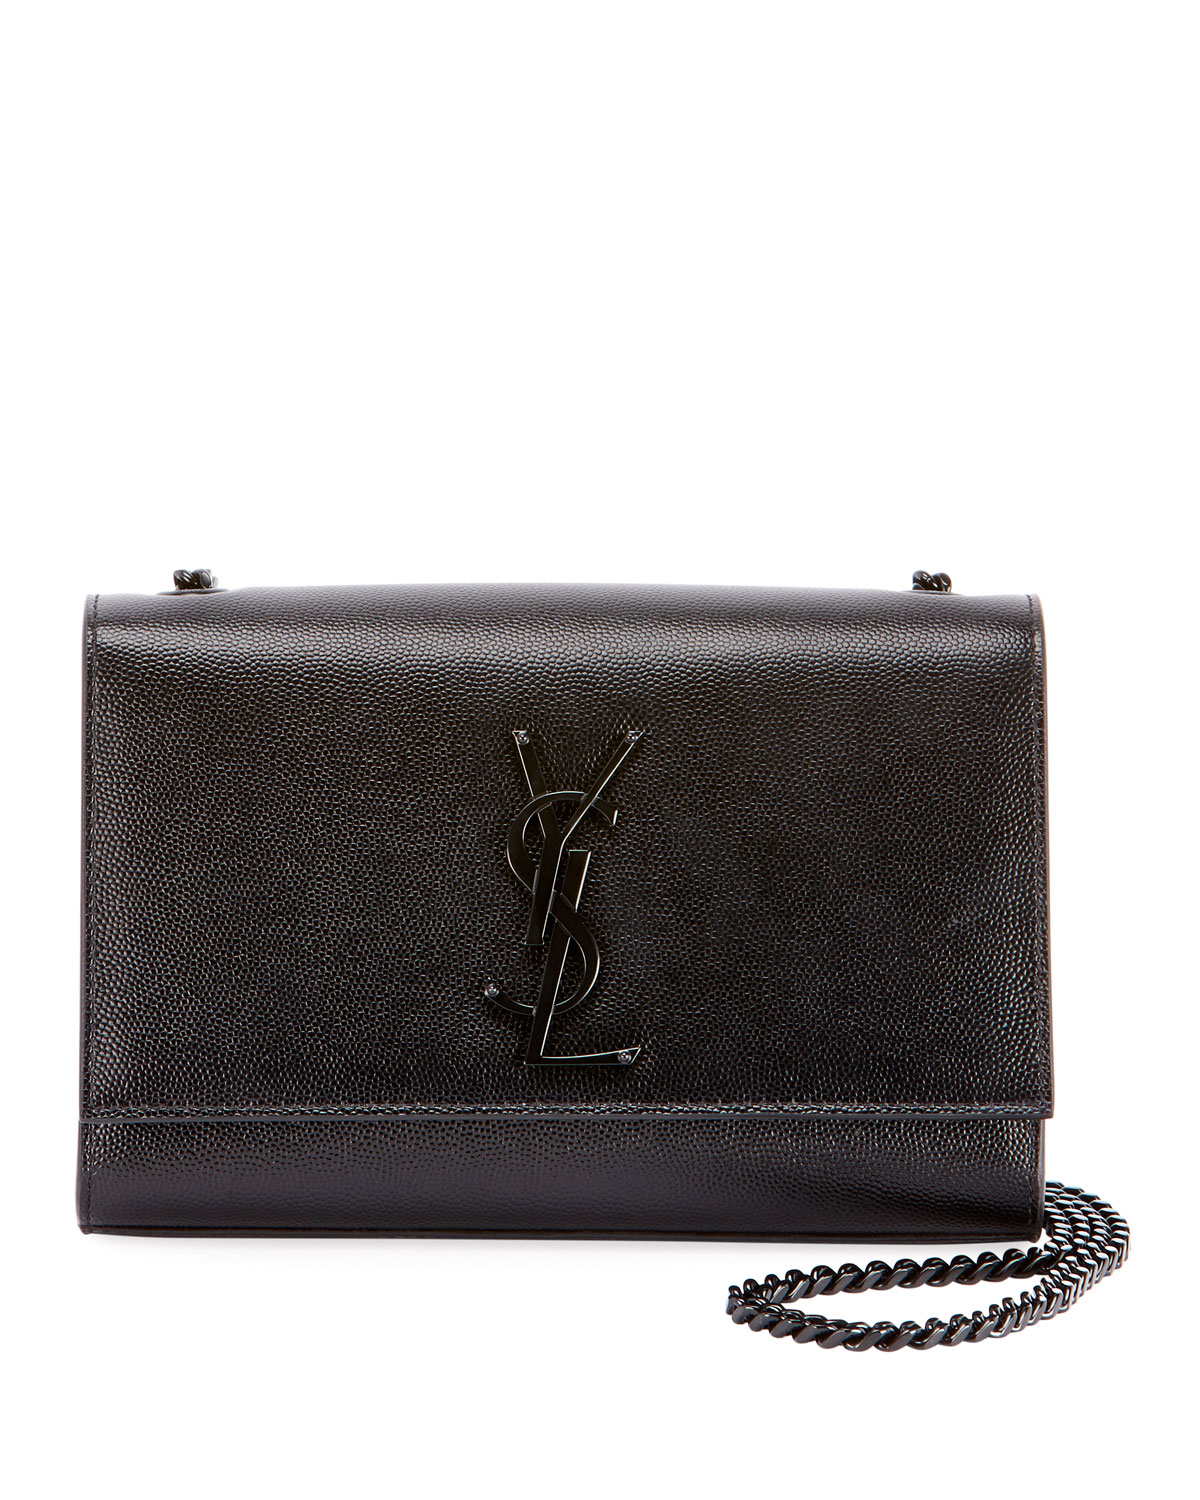 30083a47b0d Saint Laurent Kate Monogram YSL Small Chain Shoulder Bag